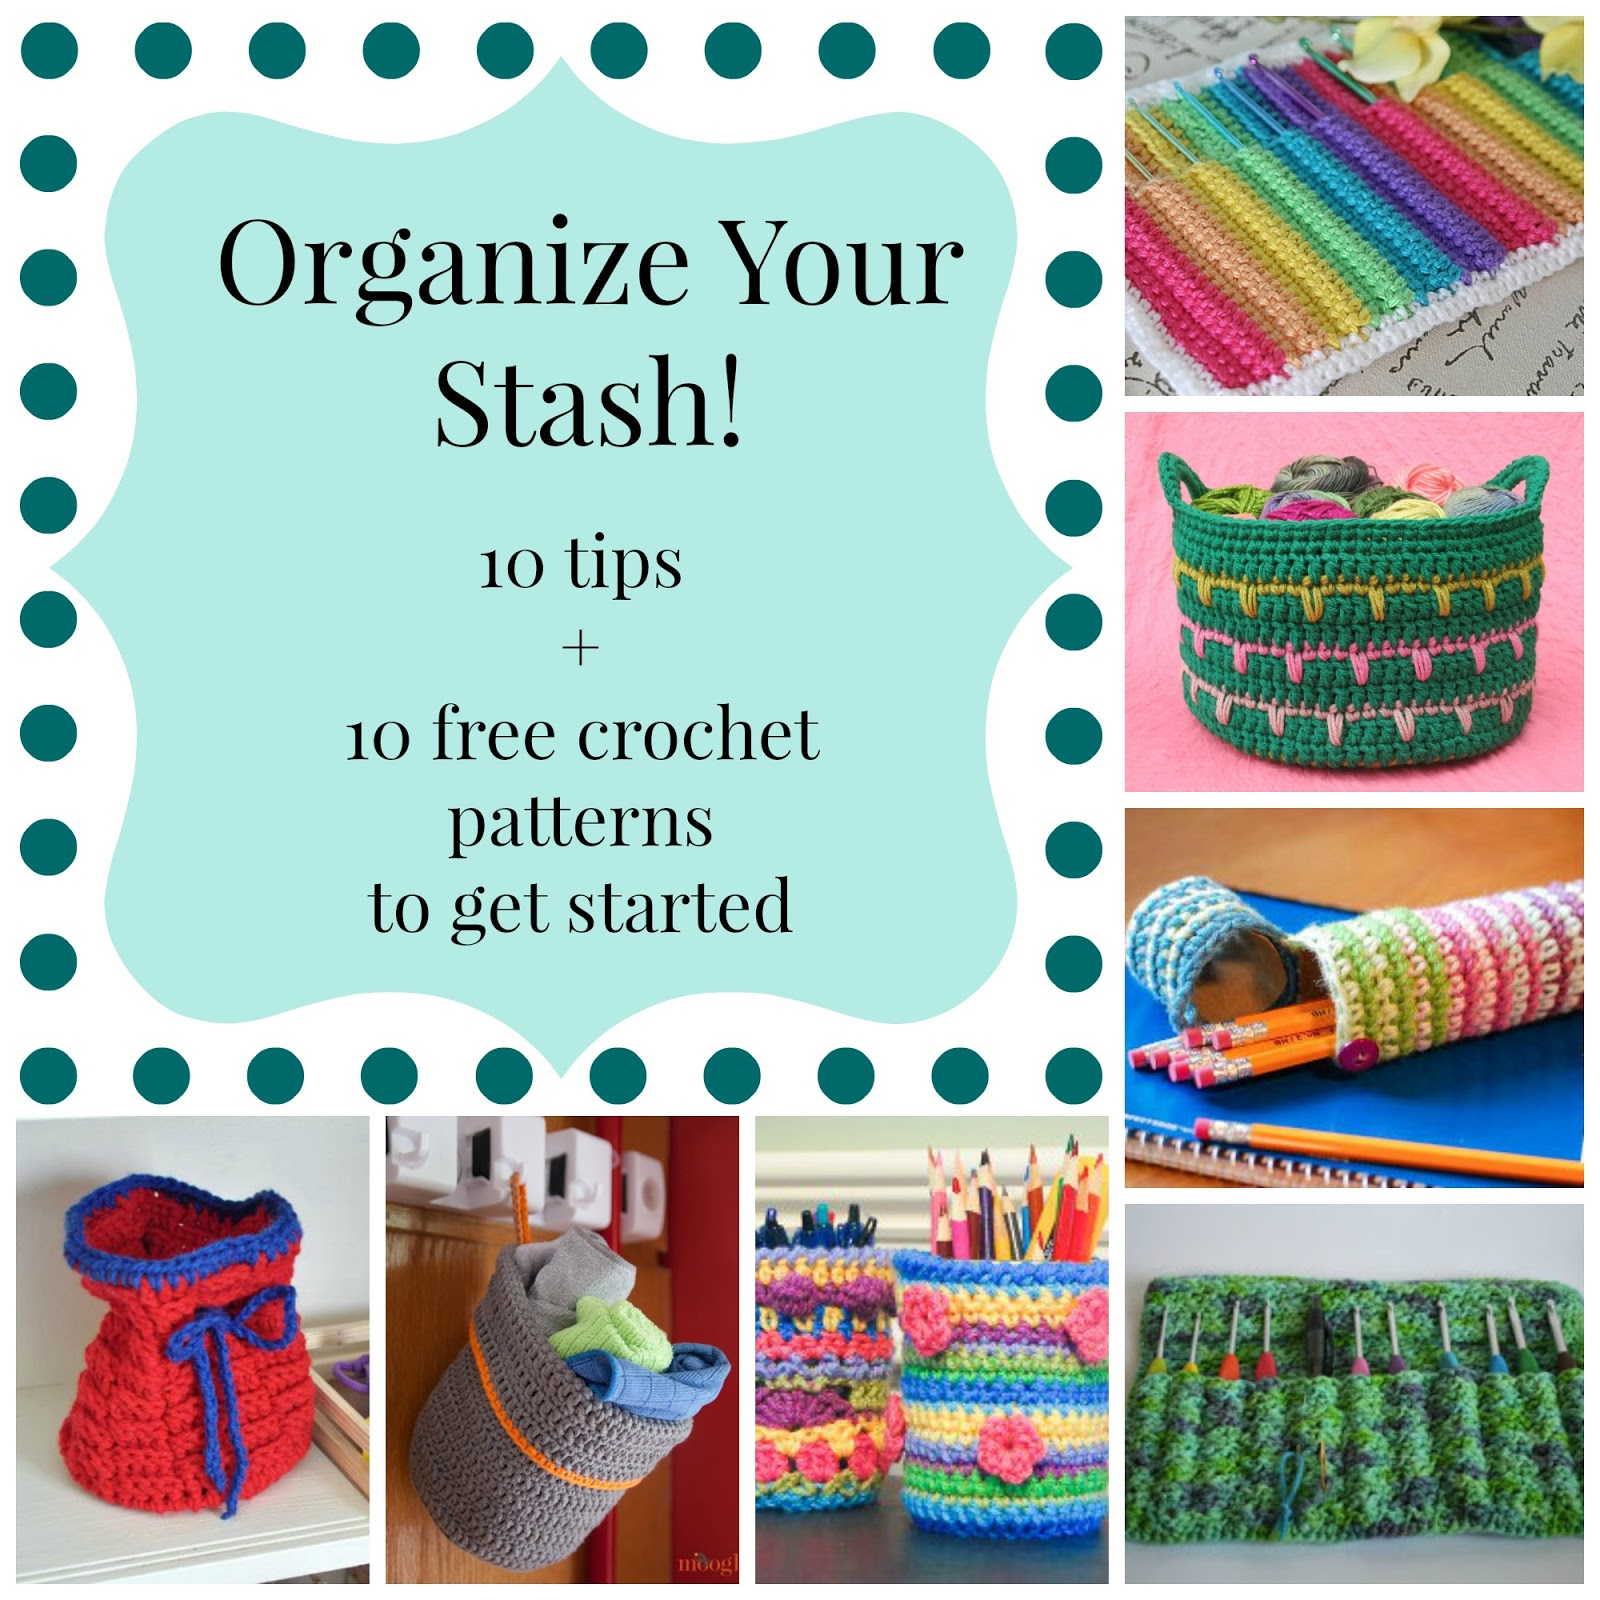 Organize Your Stash! 10 Tips + 10 Free Crochet Patterns to get Started